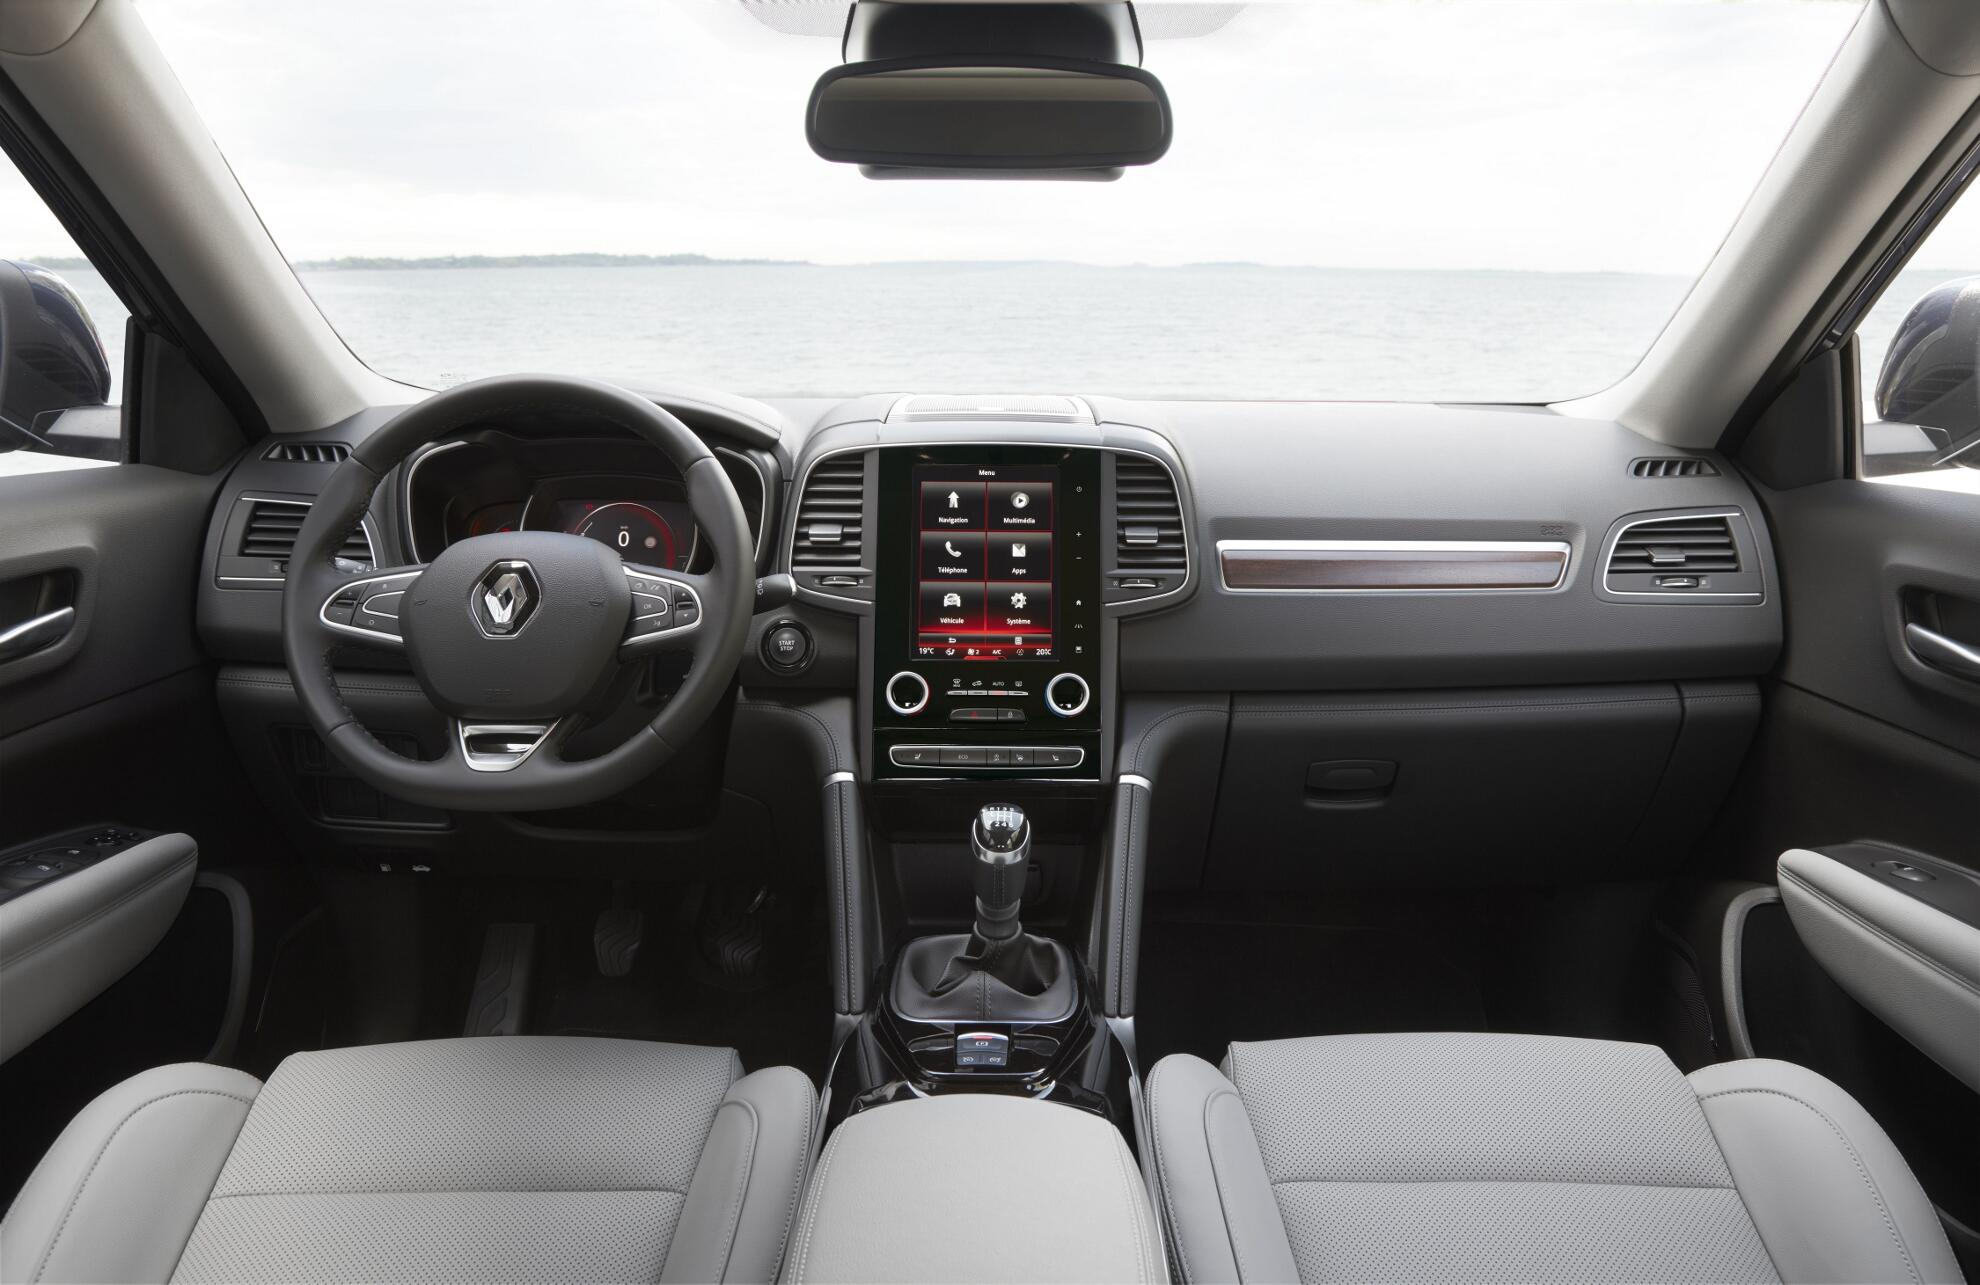 Modellbeschreibung ber den renault koleos 2 generation for Kadjar interieur 7 places